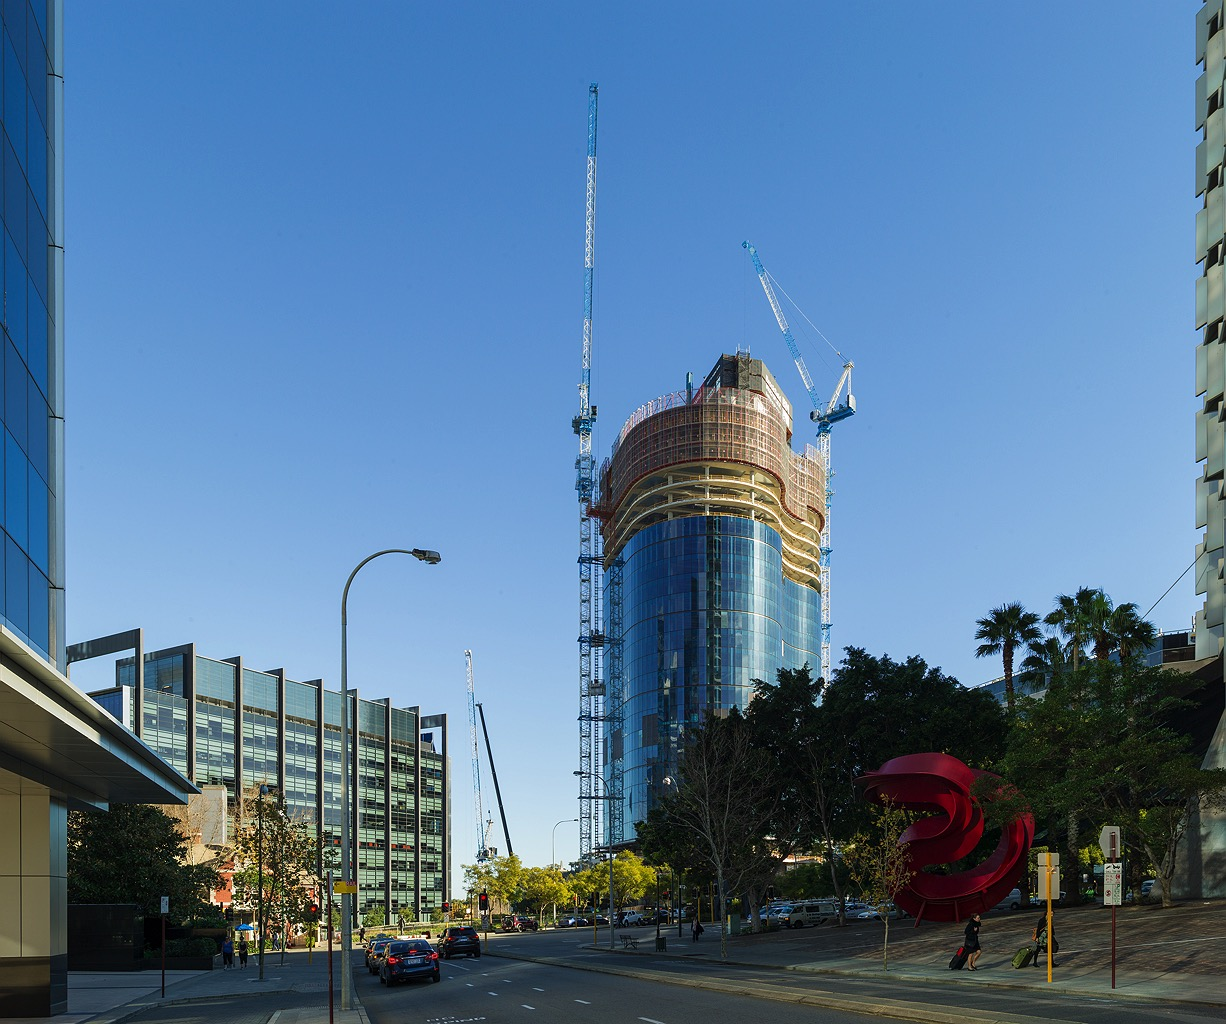 11-capital-square-construction-progress-perth-wa